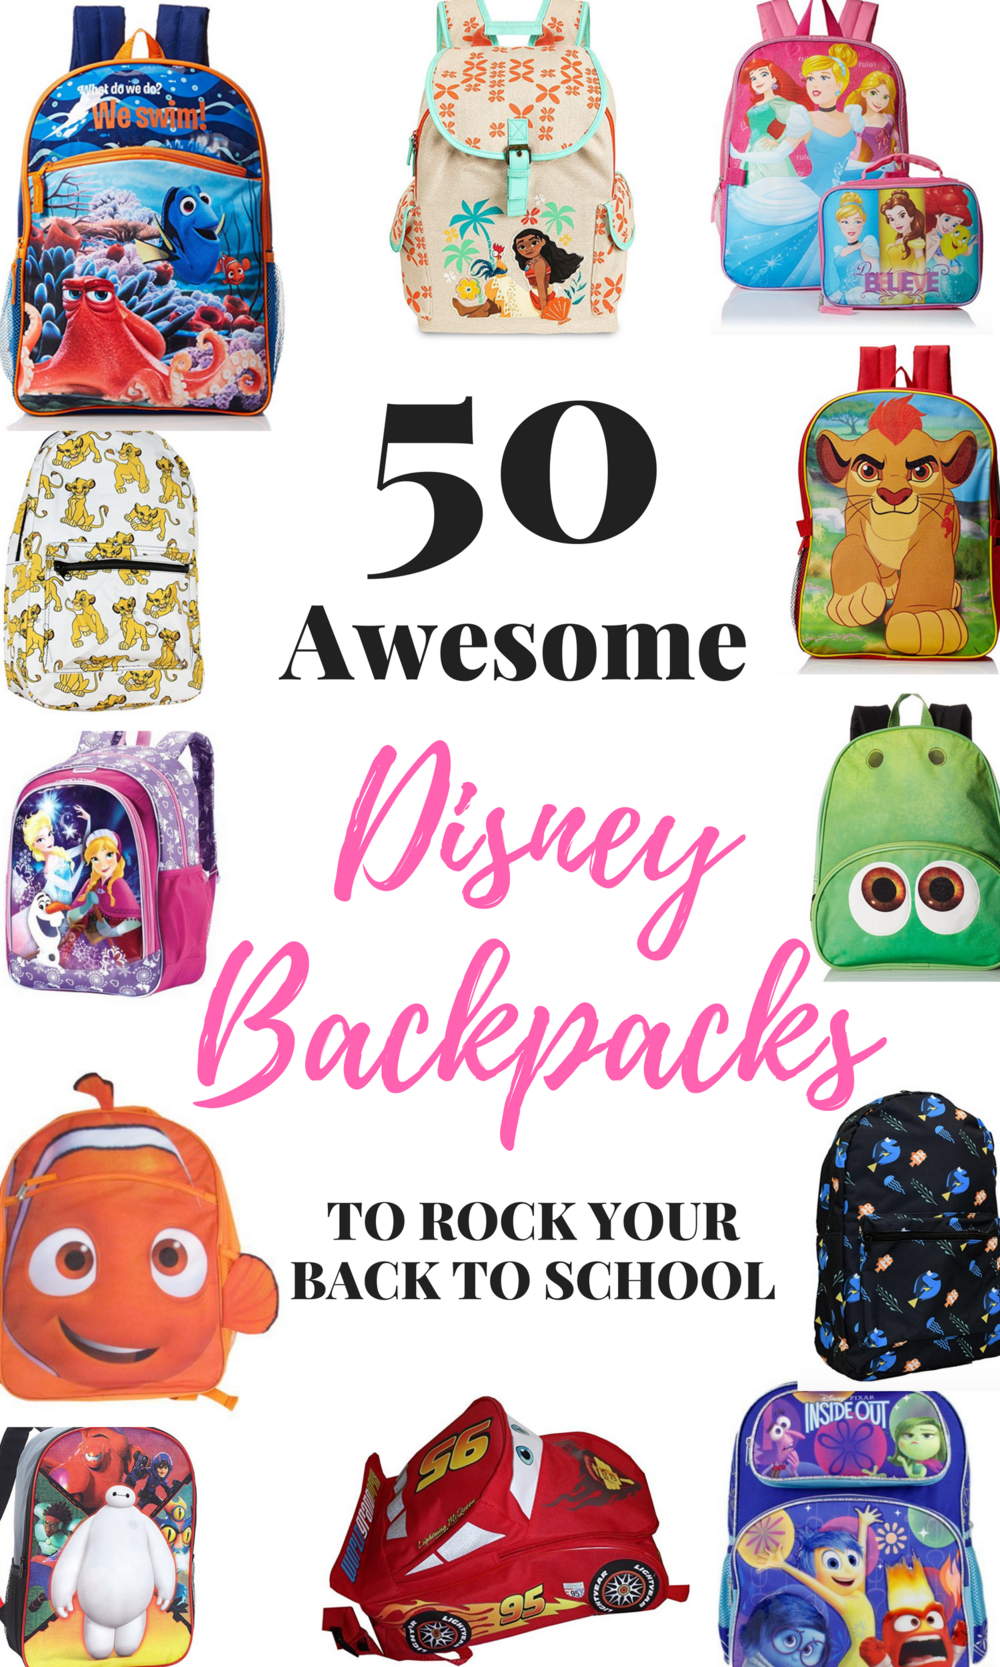 Top Disney Backpacks for Back to School